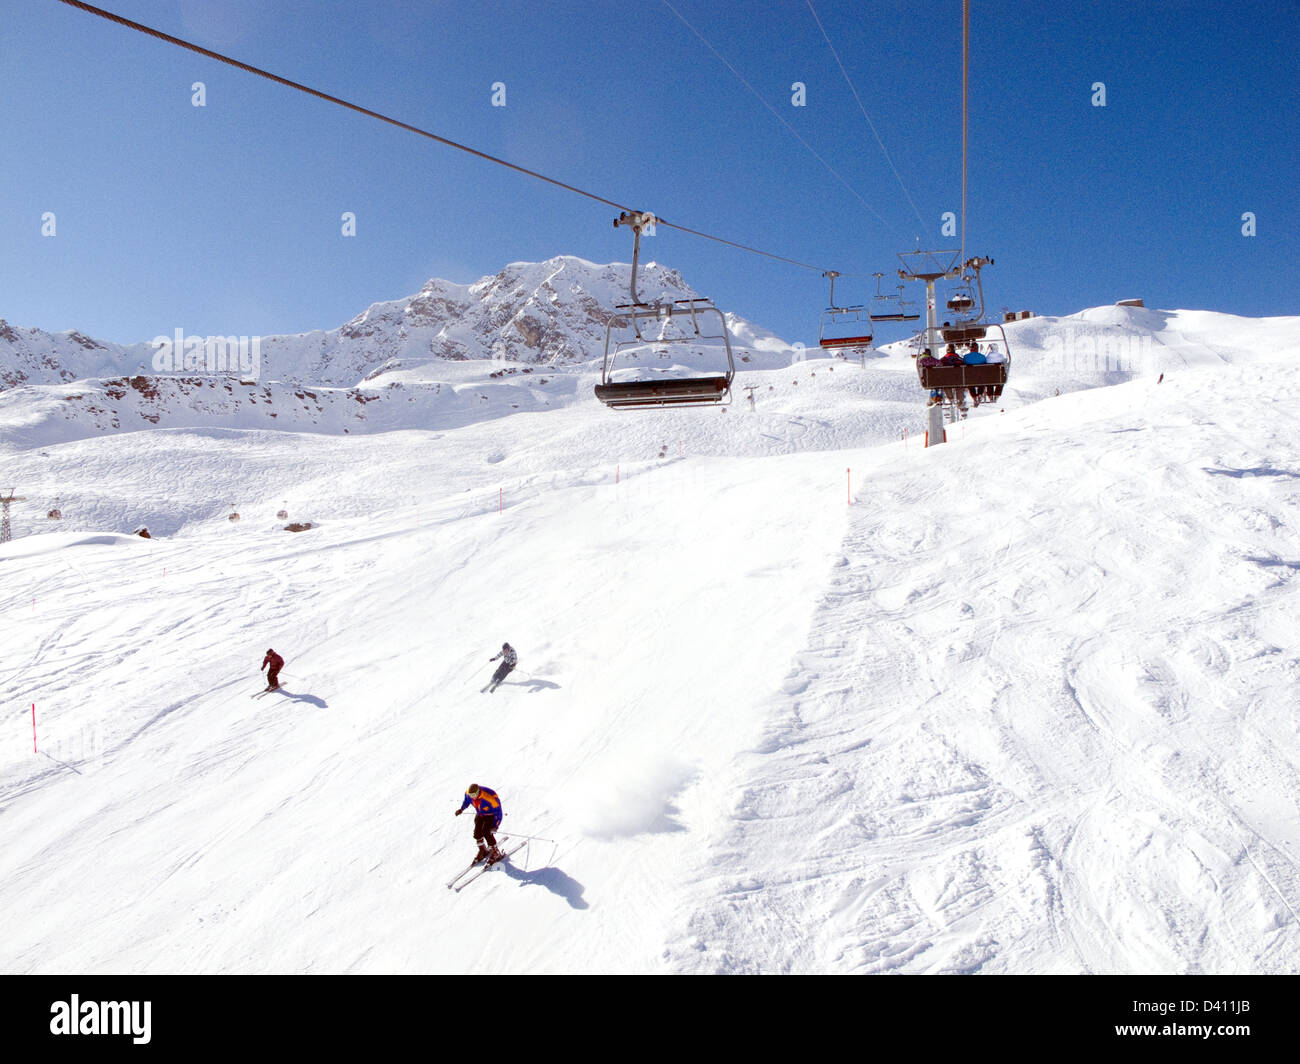 Skiers skiing on the slopes ( piste ), and the Hornli chairlift, Arosa ski resort Switzerland Europe - Stock Image